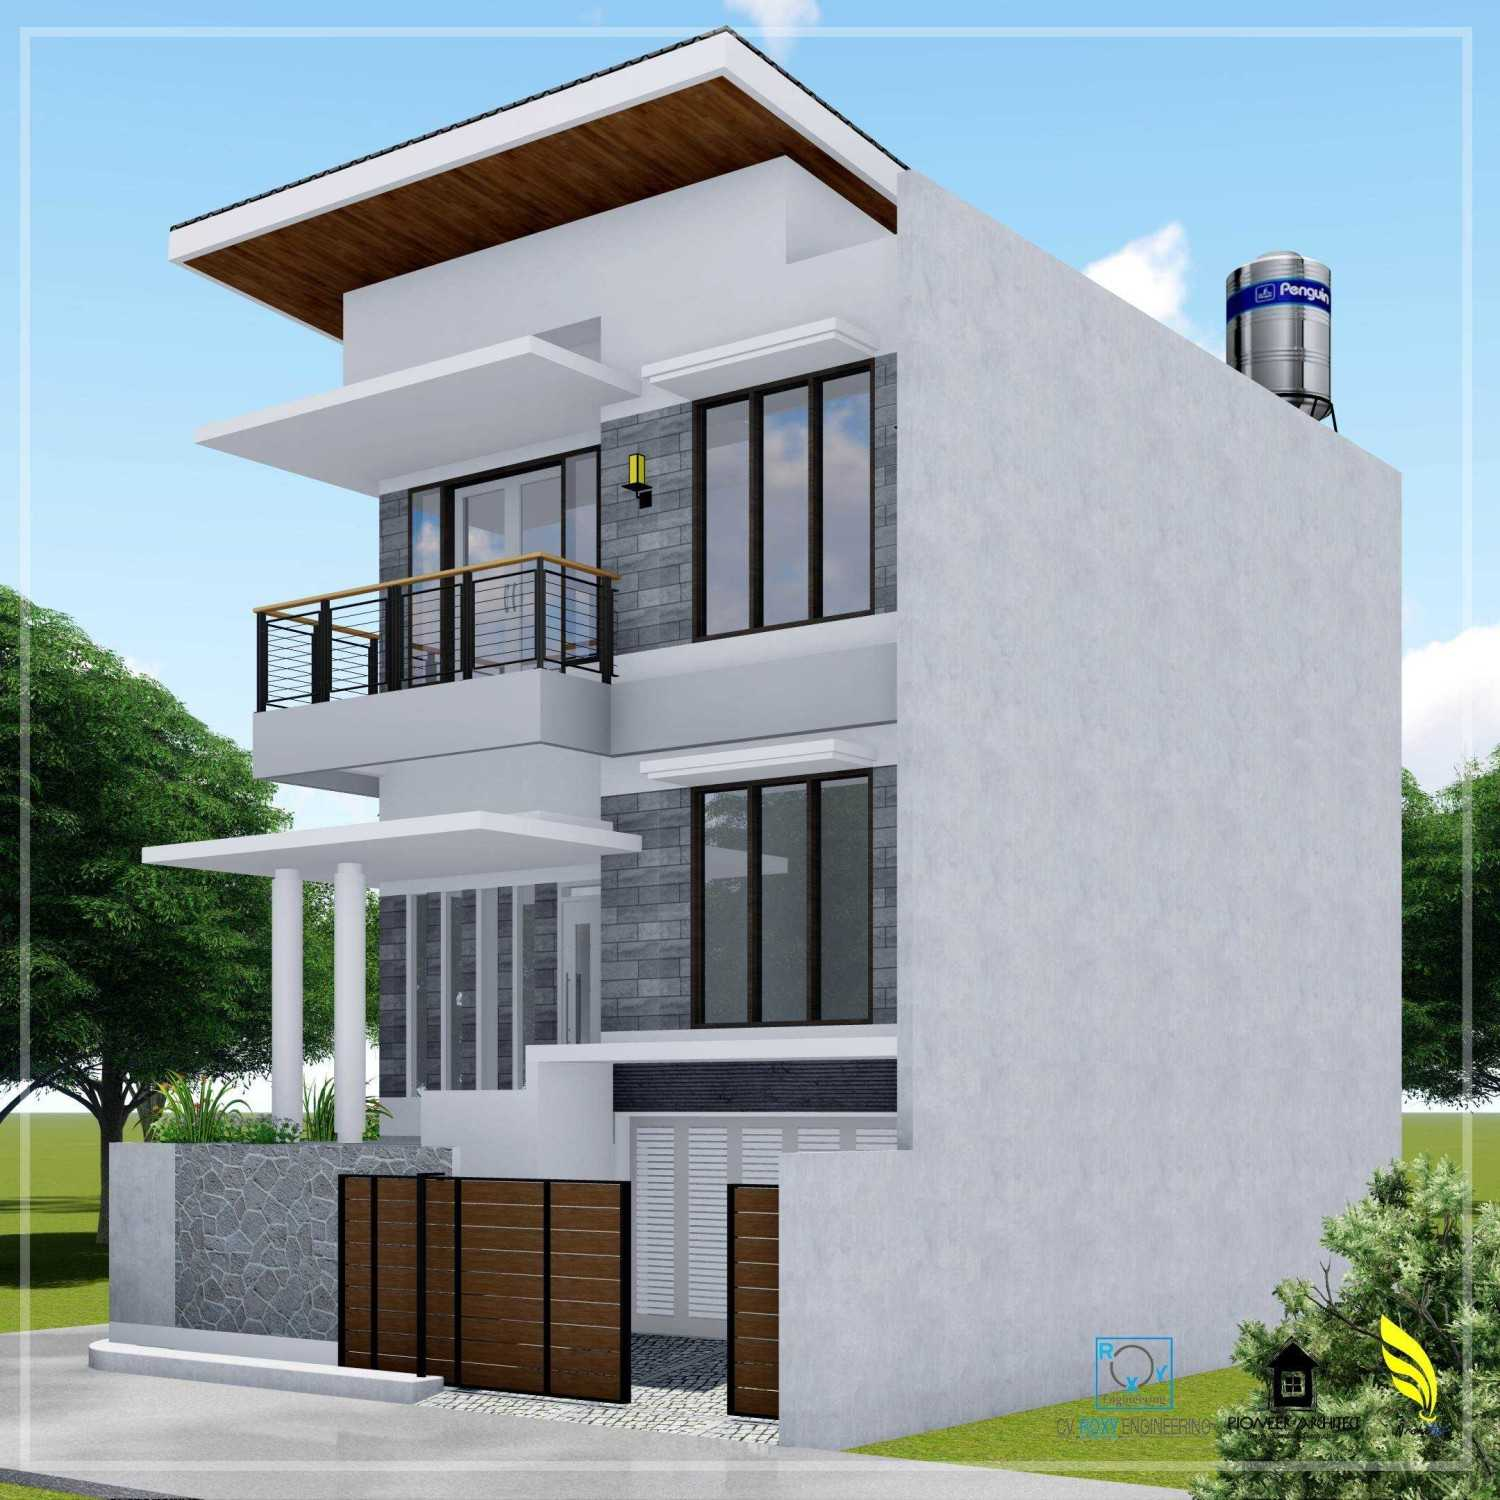 Pionner Architect N House Lhokseumawe, Kota Lhokseumawe, Aceh, Indonesia Lhokseumawe, Kota Lhokseumawe, Aceh, Indonesia Side View Modern 43259